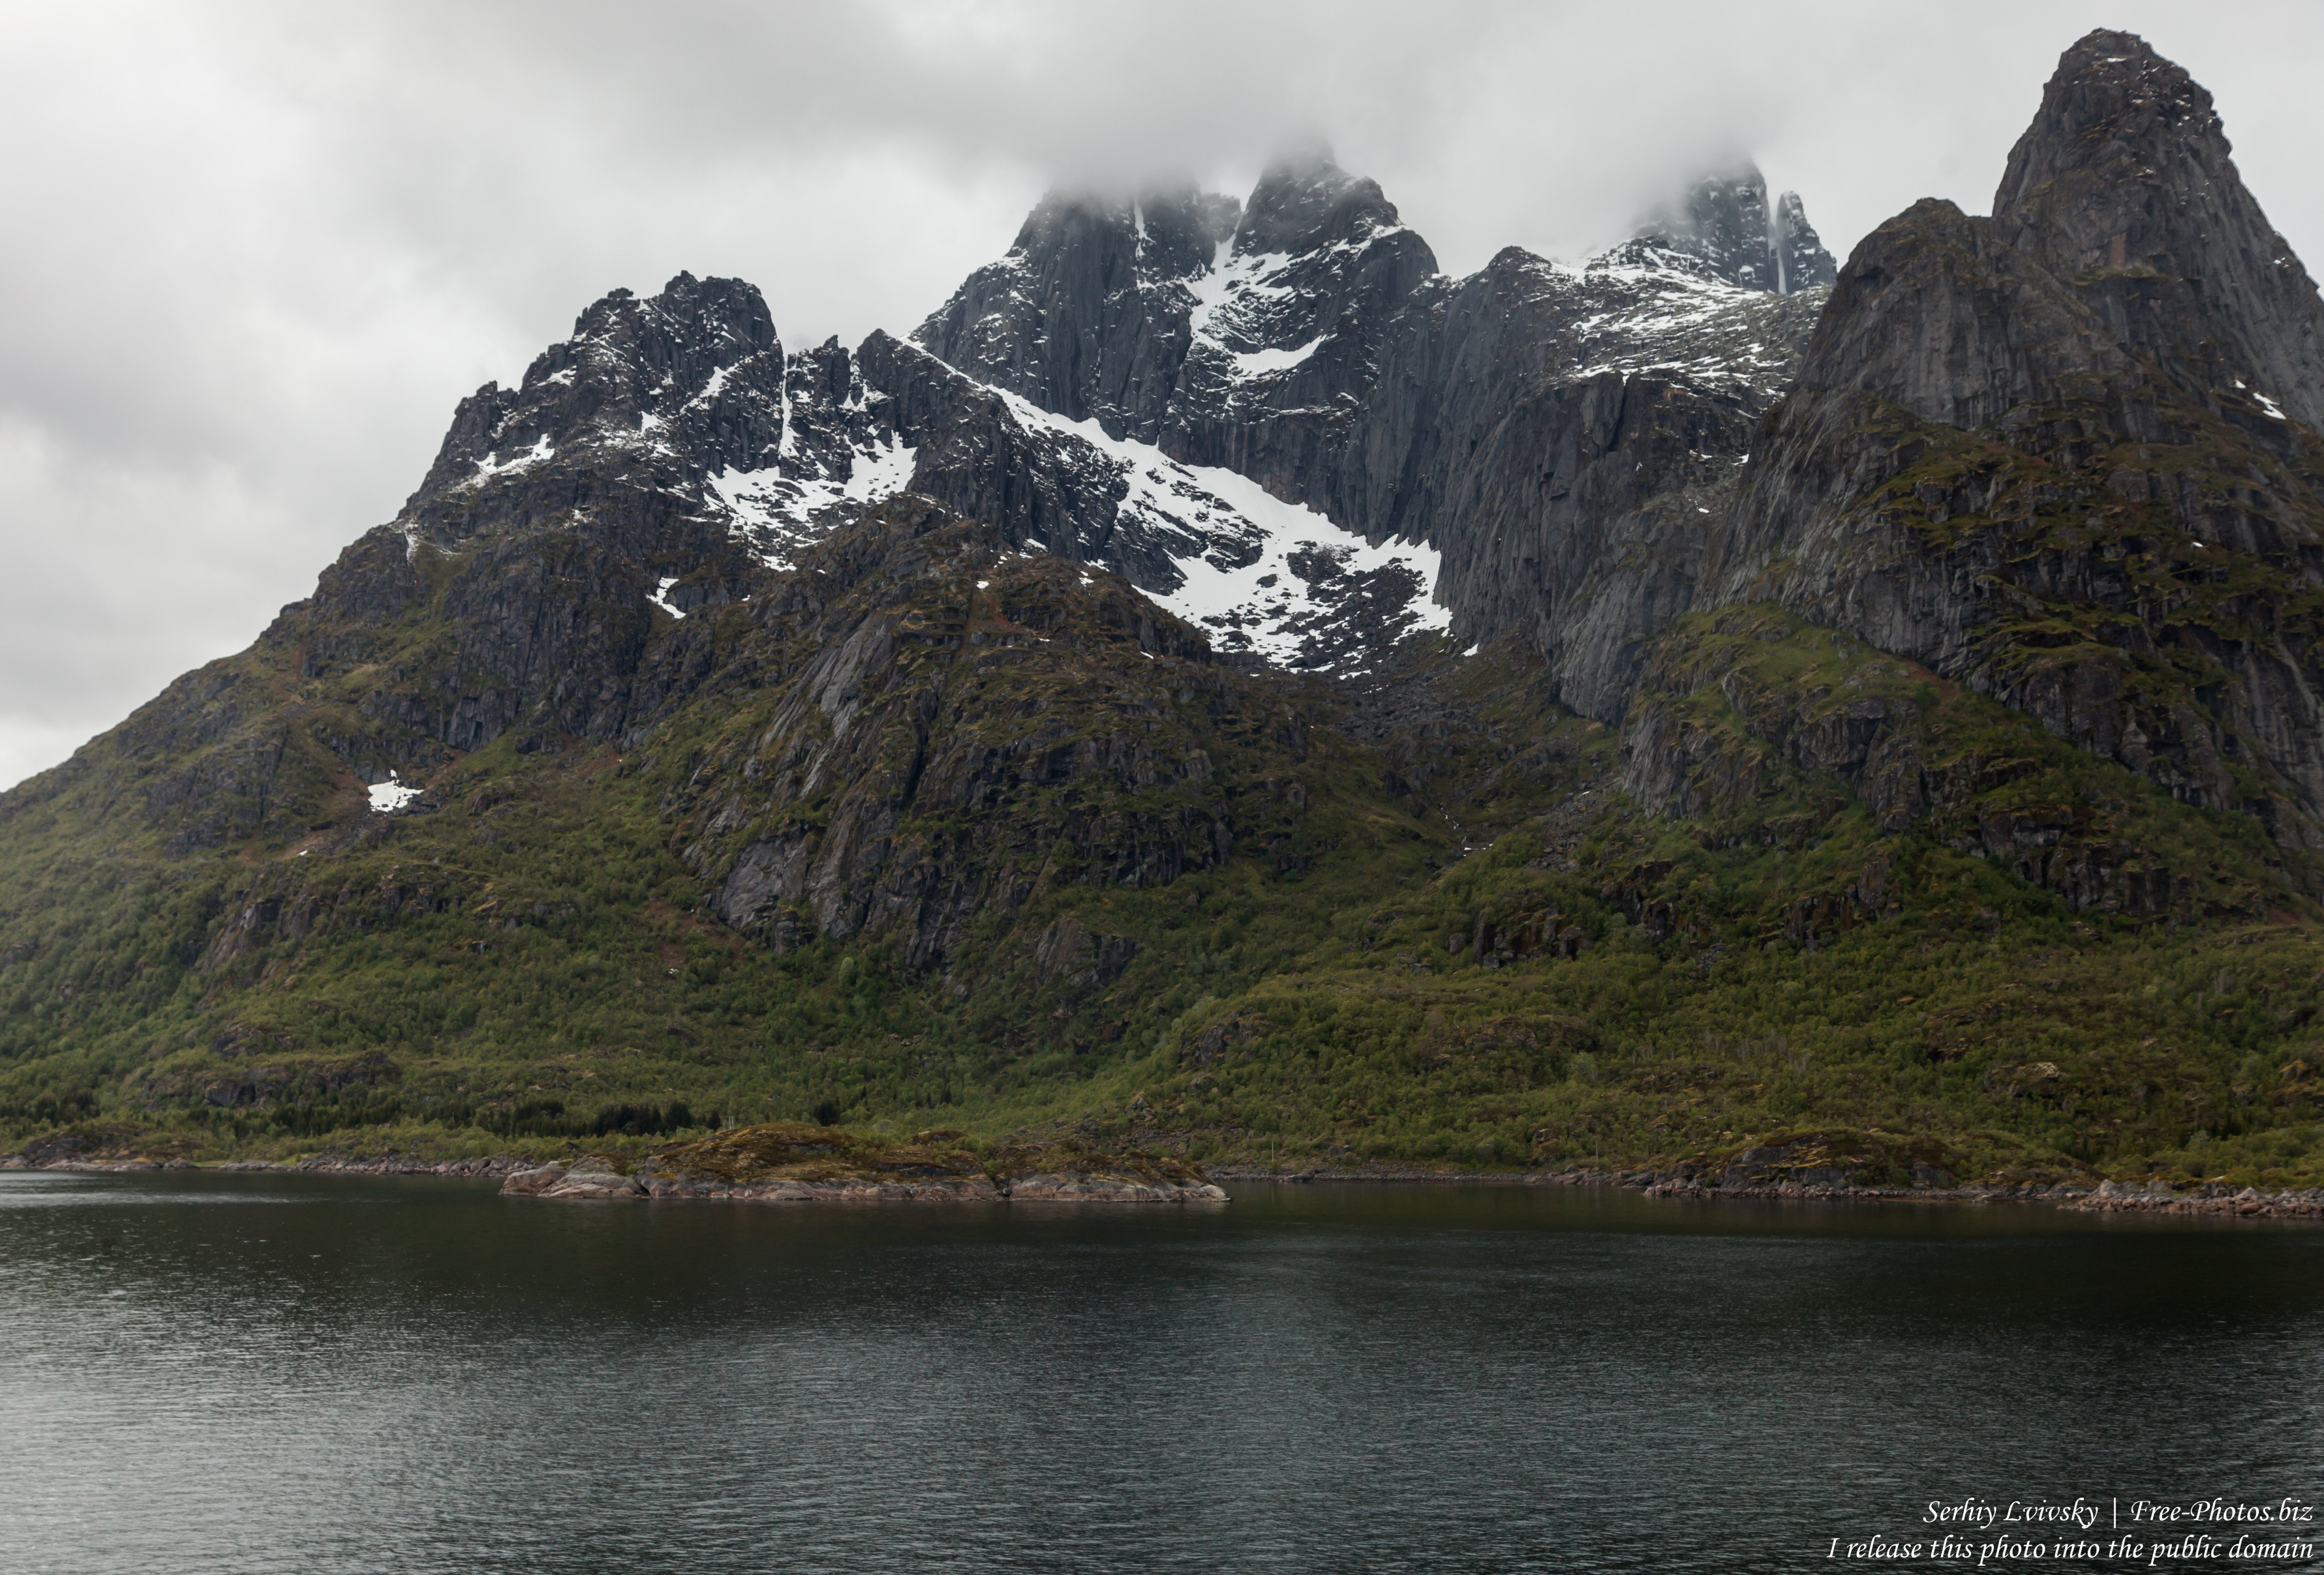 way from Stokmarknes to Trollfjord, Norway, photographed in June 2018 by Serhiy Lvivsky, picture 17